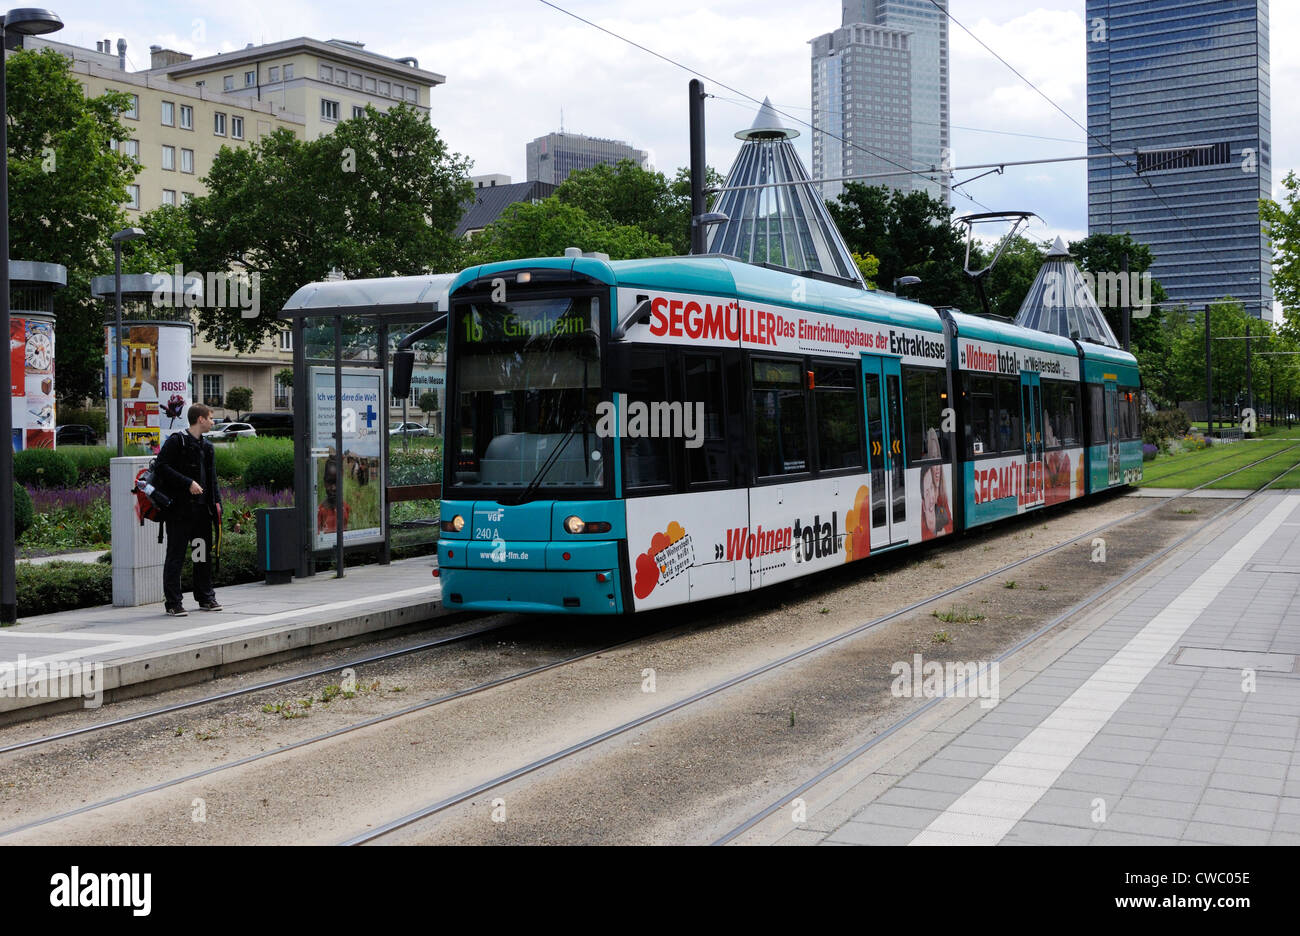 The No. 16 tram at the Festhalle/Messe stop, Frankfurt, Germany. Stock Photo